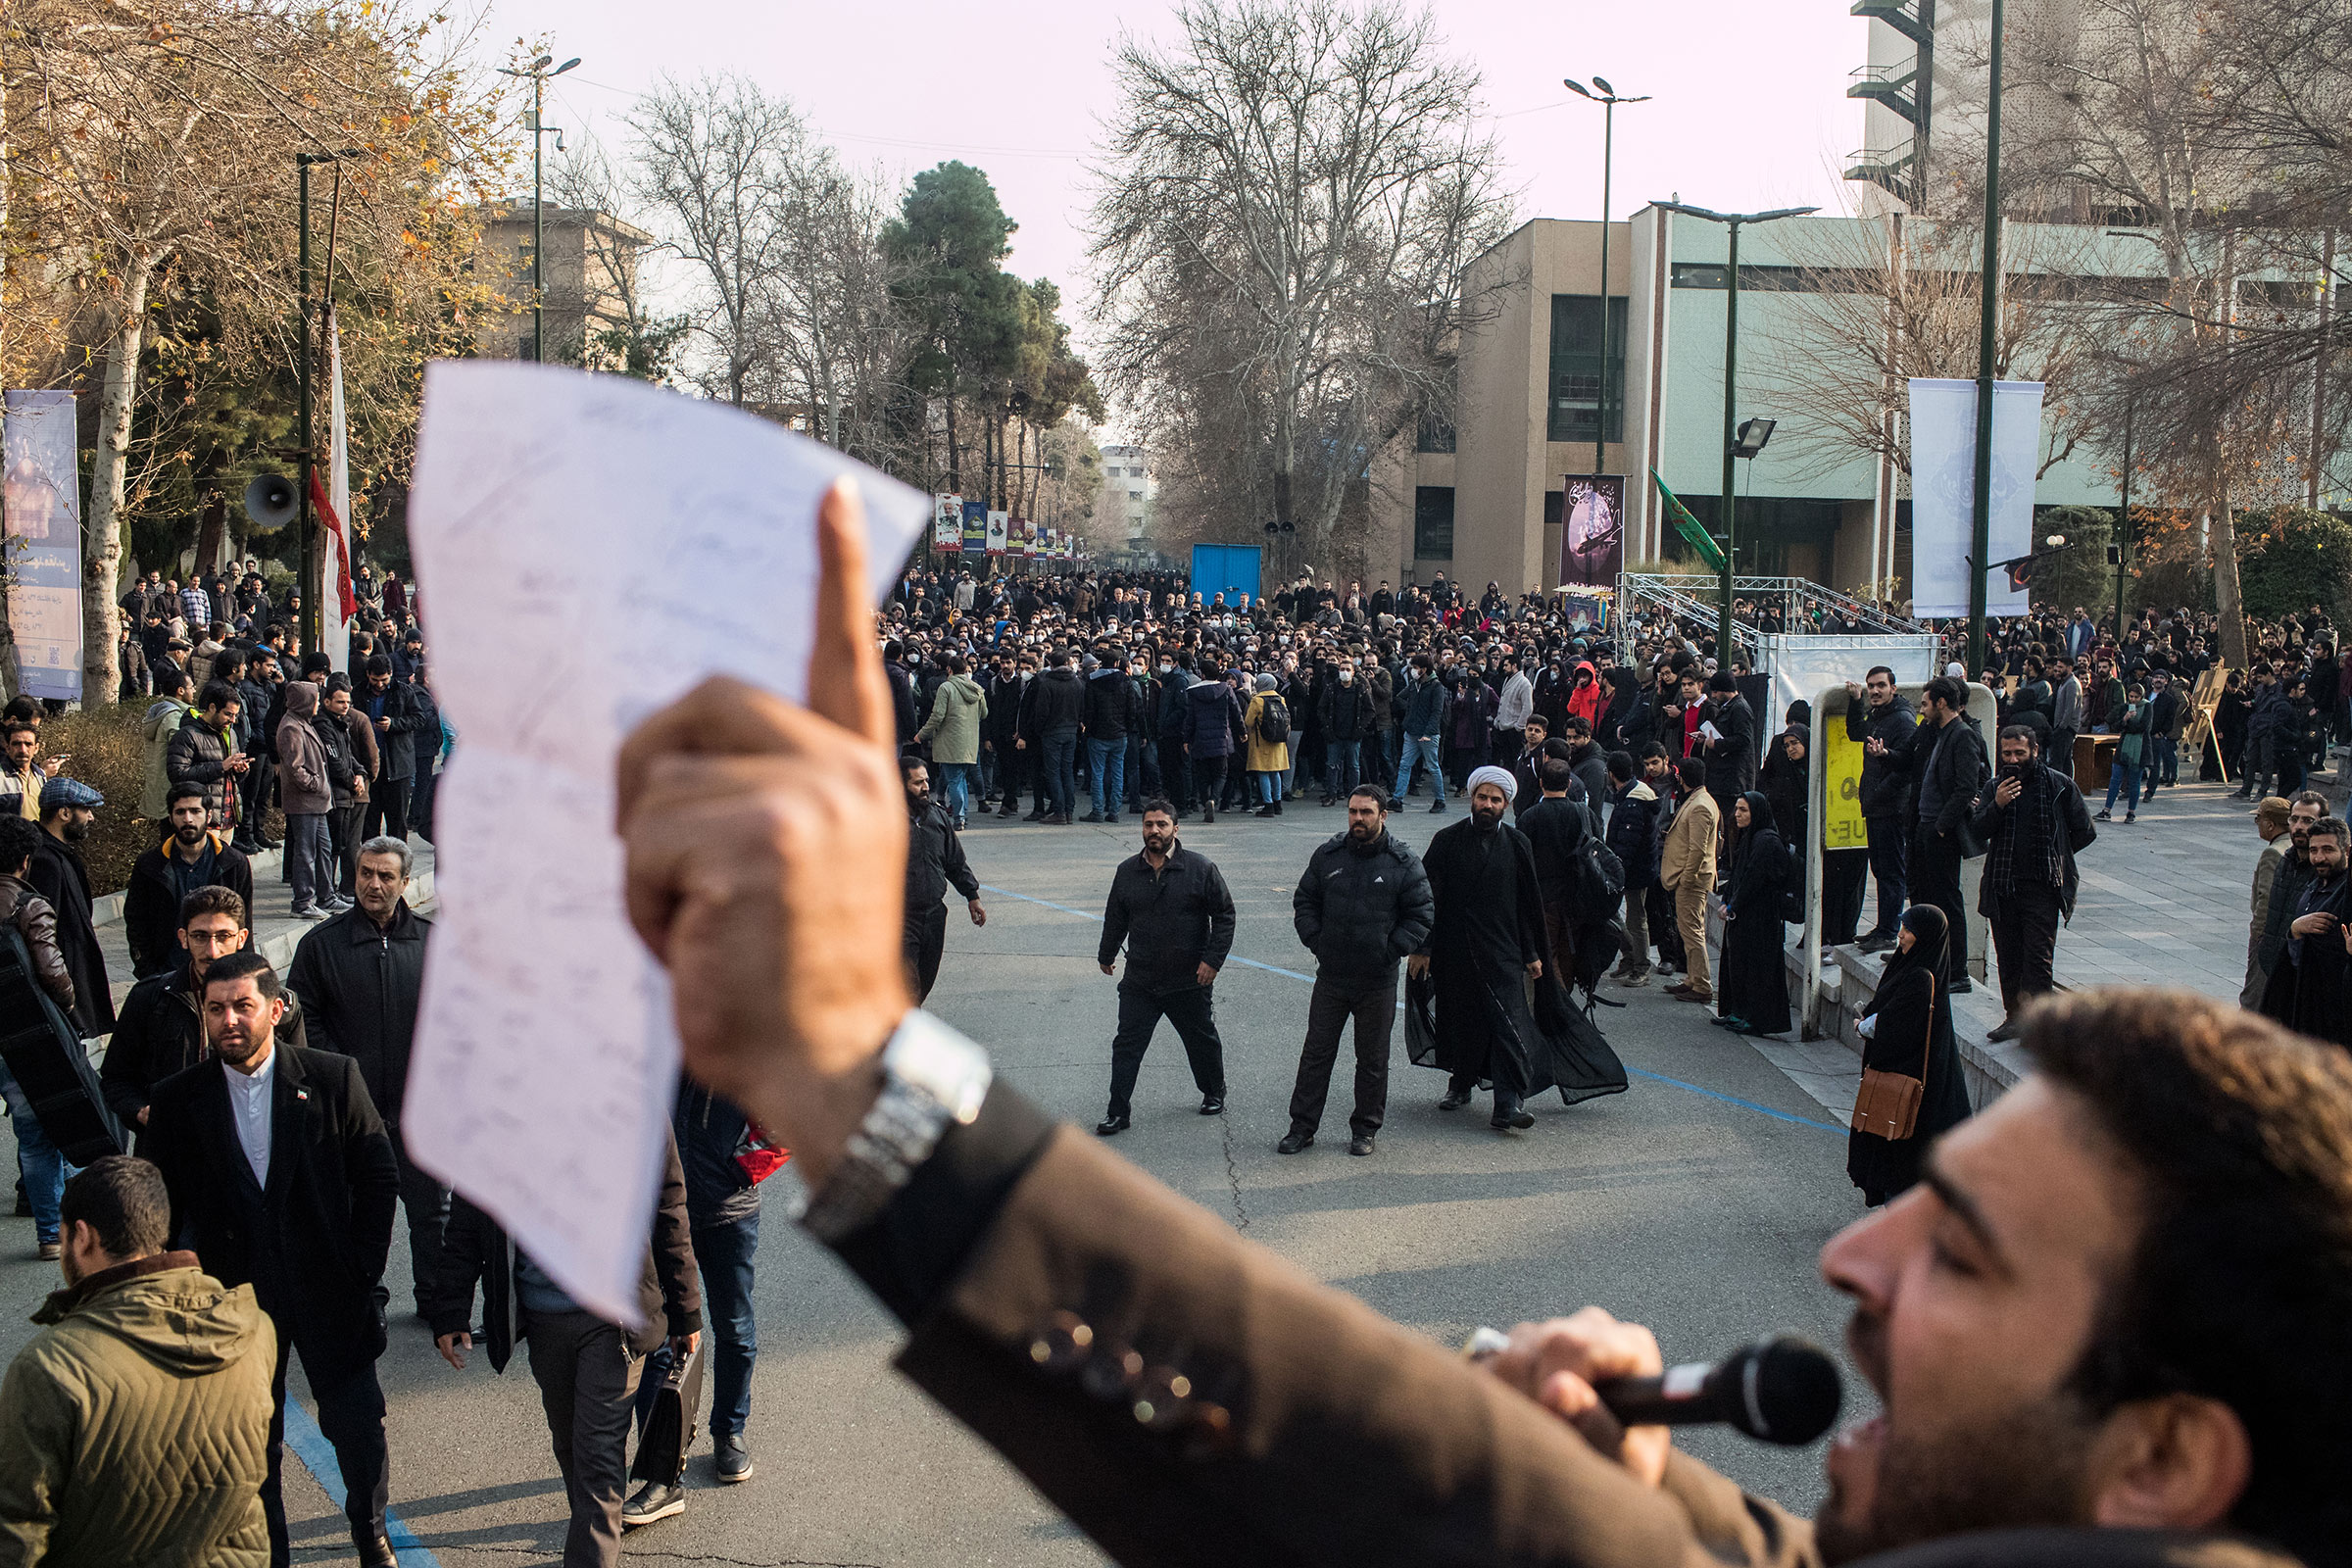 January 14, 2020 - Tehran, Iran: Students protest against the government at Tehran University at the same time when the pro-government students are holding a memorial for Major Gen. Qasem Soleimani in Tehran, Iran.